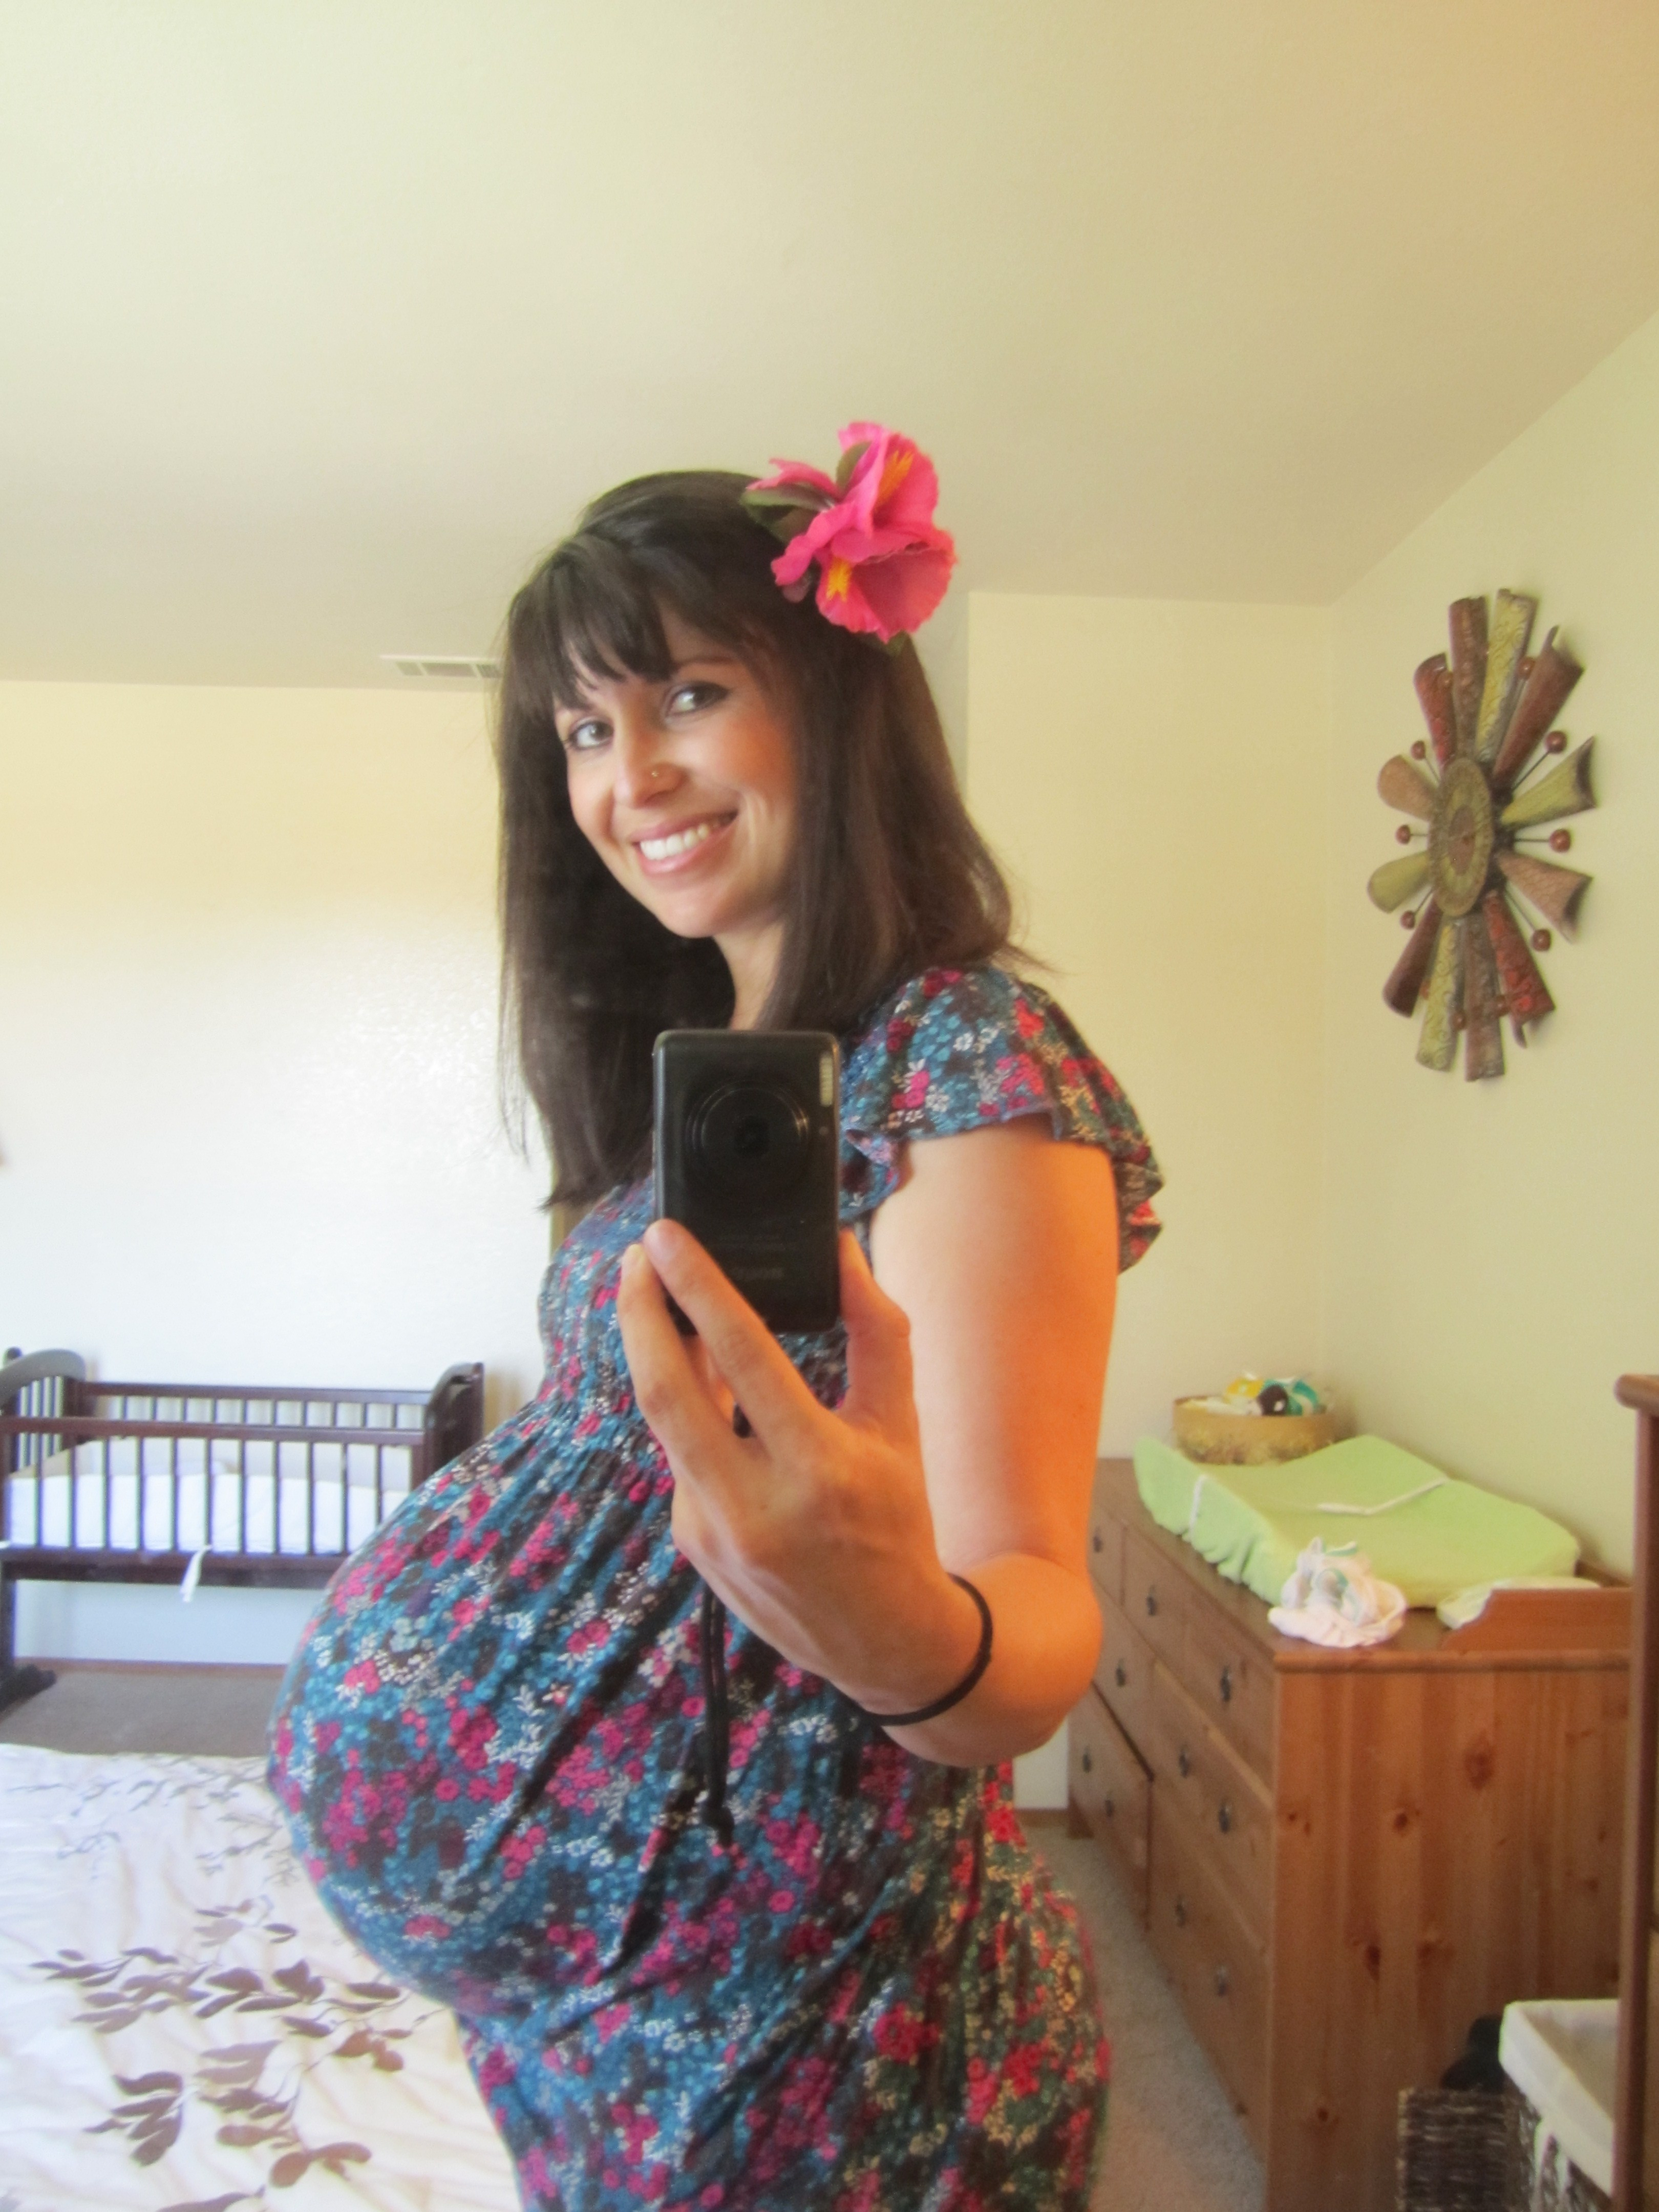 41 weeks pregnant tired